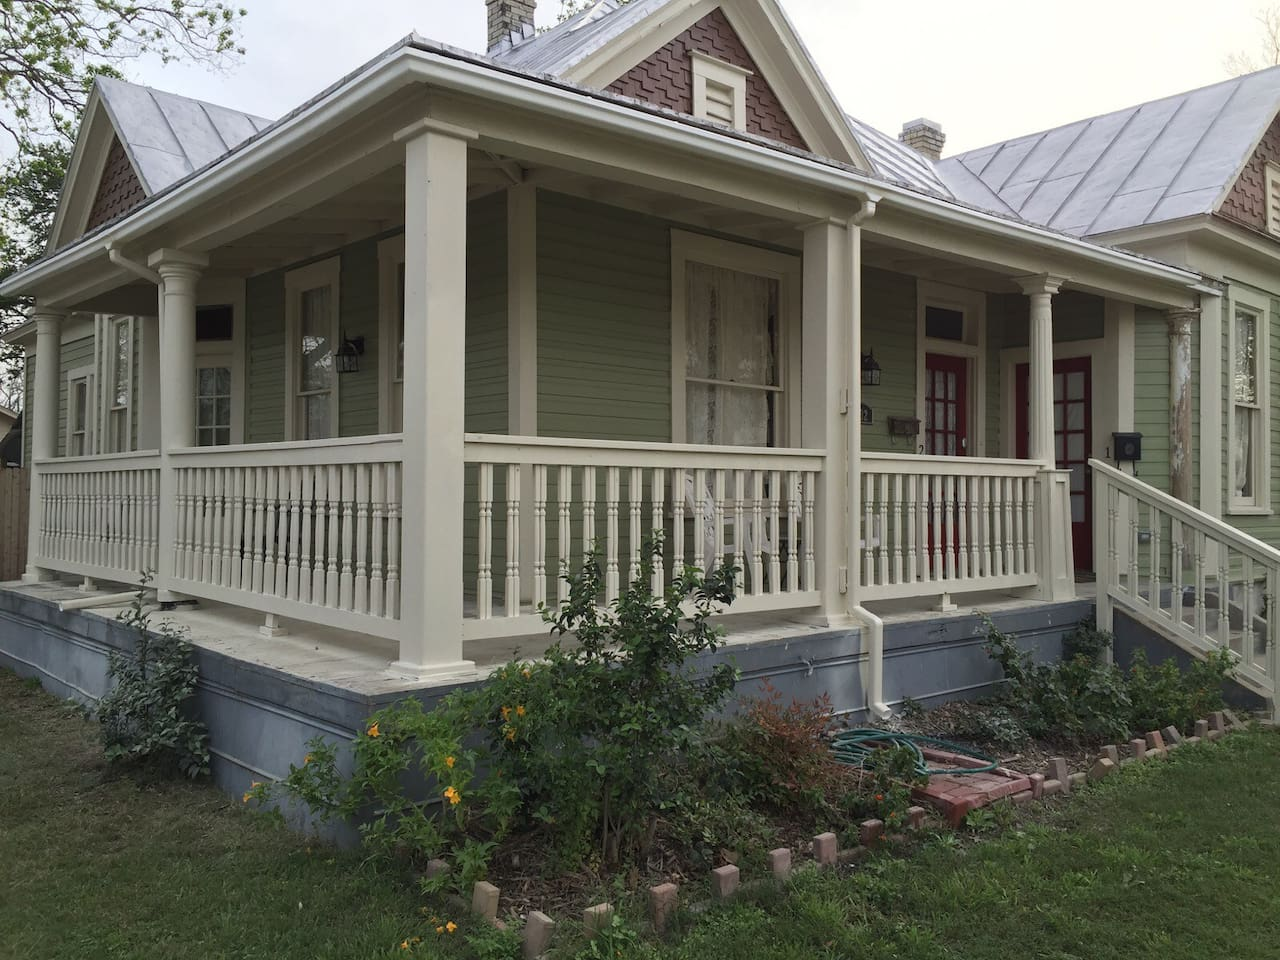 Early 1900's era Home with Wrap-around Porch